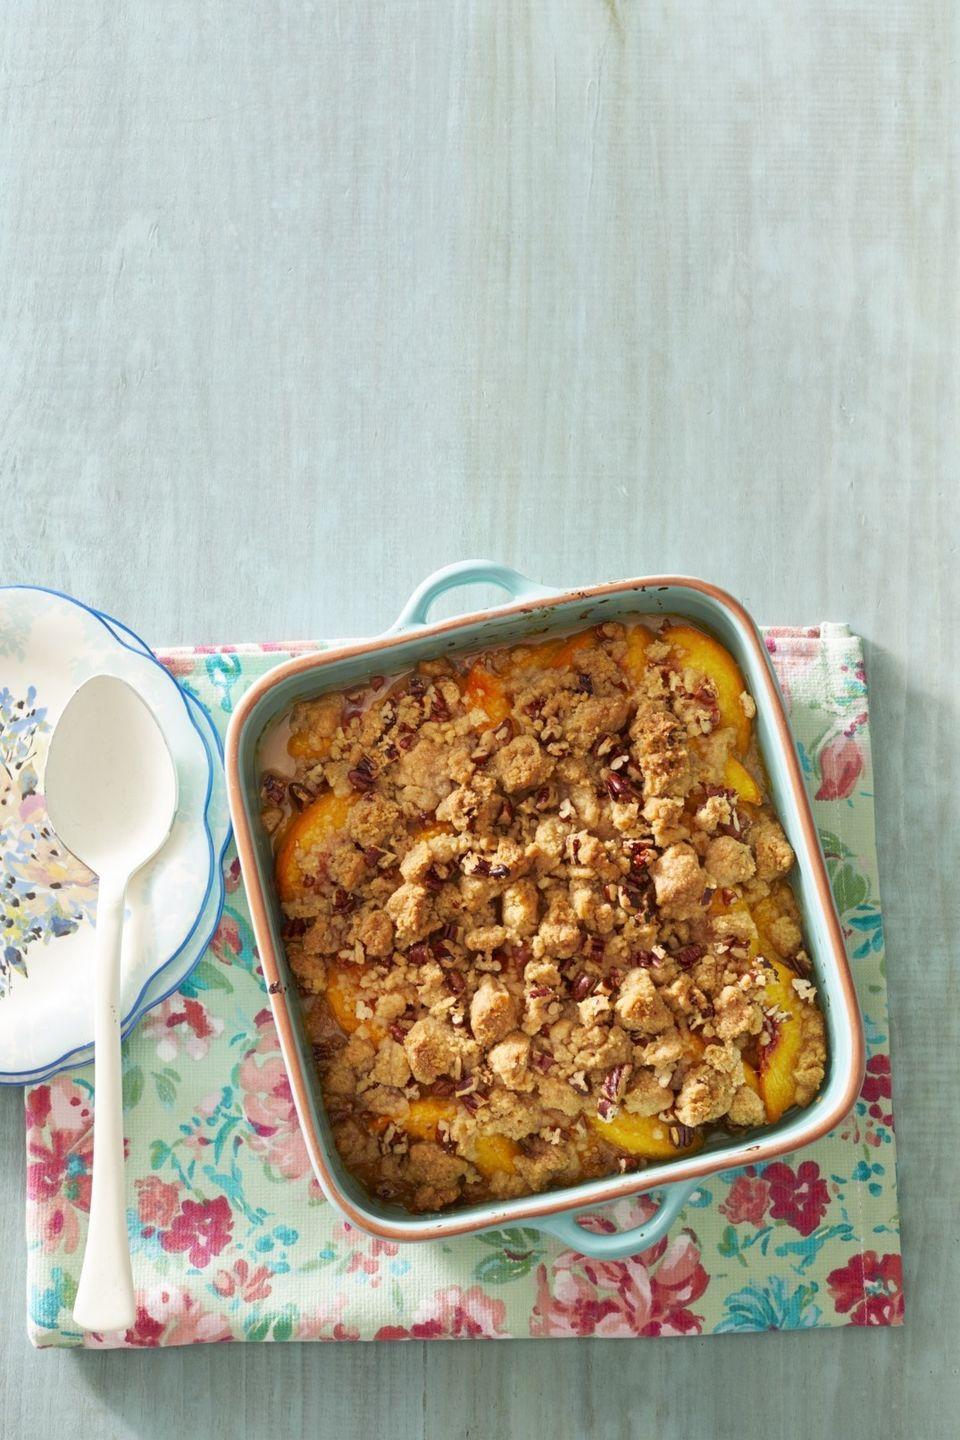 """<p>Serve this crisp fresh out of the oven, with ice cream on the side of course!</p><p><strong><a href=""""https://thepioneerwoman.com/food-cooking/recipes/a32097453/peach-pecan-crisp-recipe/"""" rel=""""nofollow noopener"""" target=""""_blank"""" data-ylk=""""slk:Get the recipe."""" class=""""link rapid-noclick-resp"""">Get the recipe.</a></strong></p><p><a class=""""link rapid-noclick-resp"""" href=""""https://go.redirectingat.com?id=74968X1596630&url=https%3A%2F%2Fwww.walmart.com%2Fip%2FThe-Pioneer-Woman-Spring-Bouquet-2-Piece-Baker-Set%2F595449072&sref=https%3A%2F%2Fwww.thepioneerwoman.com%2Ffood-cooking%2Fmeals-menus%2Fg32109085%2Ffourth-of-july-desserts%2F"""" rel=""""nofollow noopener"""" target=""""_blank"""" data-ylk=""""slk:SHOP BAKING DISHES"""">SHOP BAKING DISHES</a></p>"""